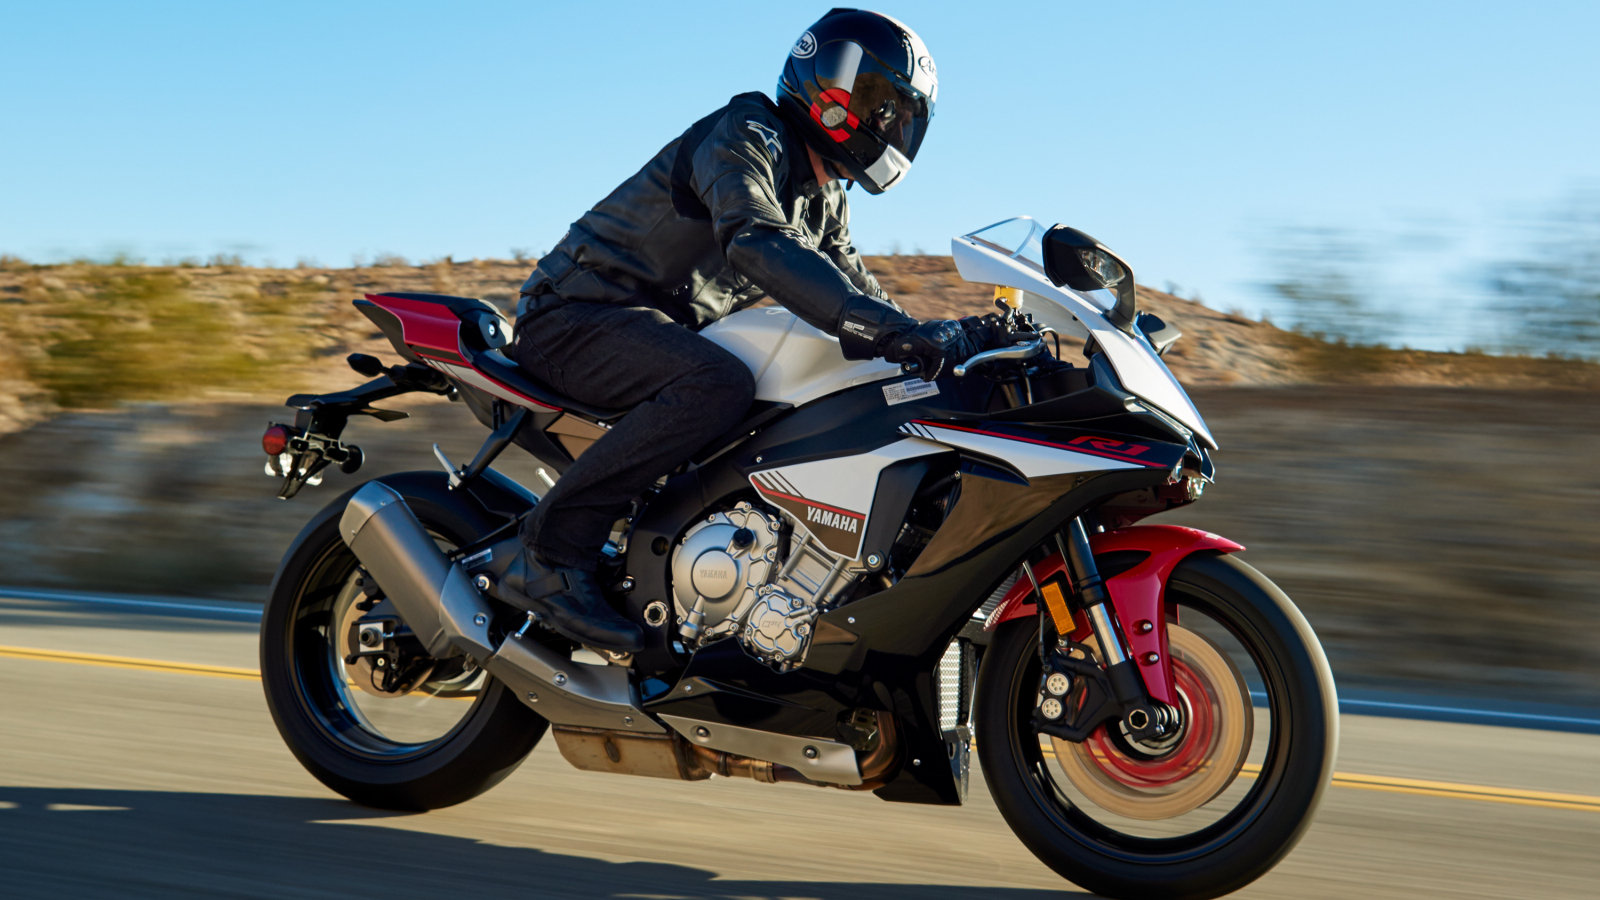 2016 yamaha yzf r1 yzf r1s yzf r1m picture 680911 motorcycle review top speed. Black Bedroom Furniture Sets. Home Design Ideas